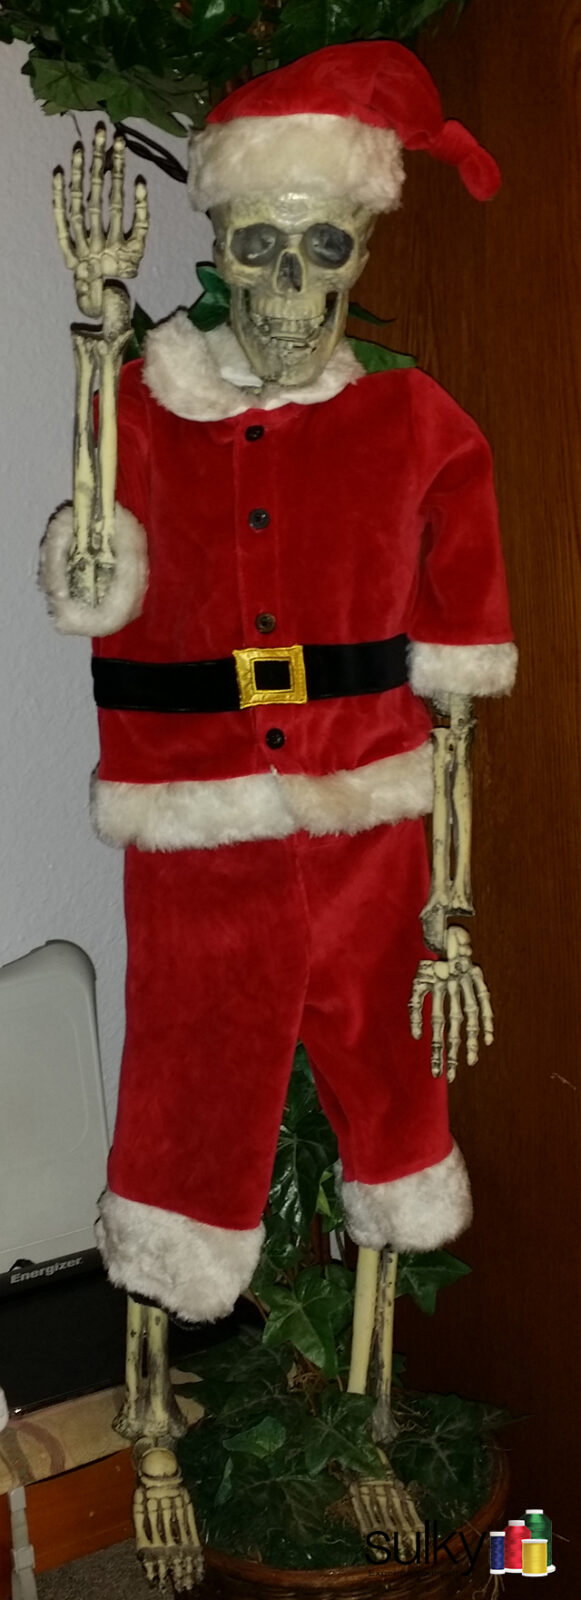 But Eric said it's not Christmas until the skeleton is dressed!